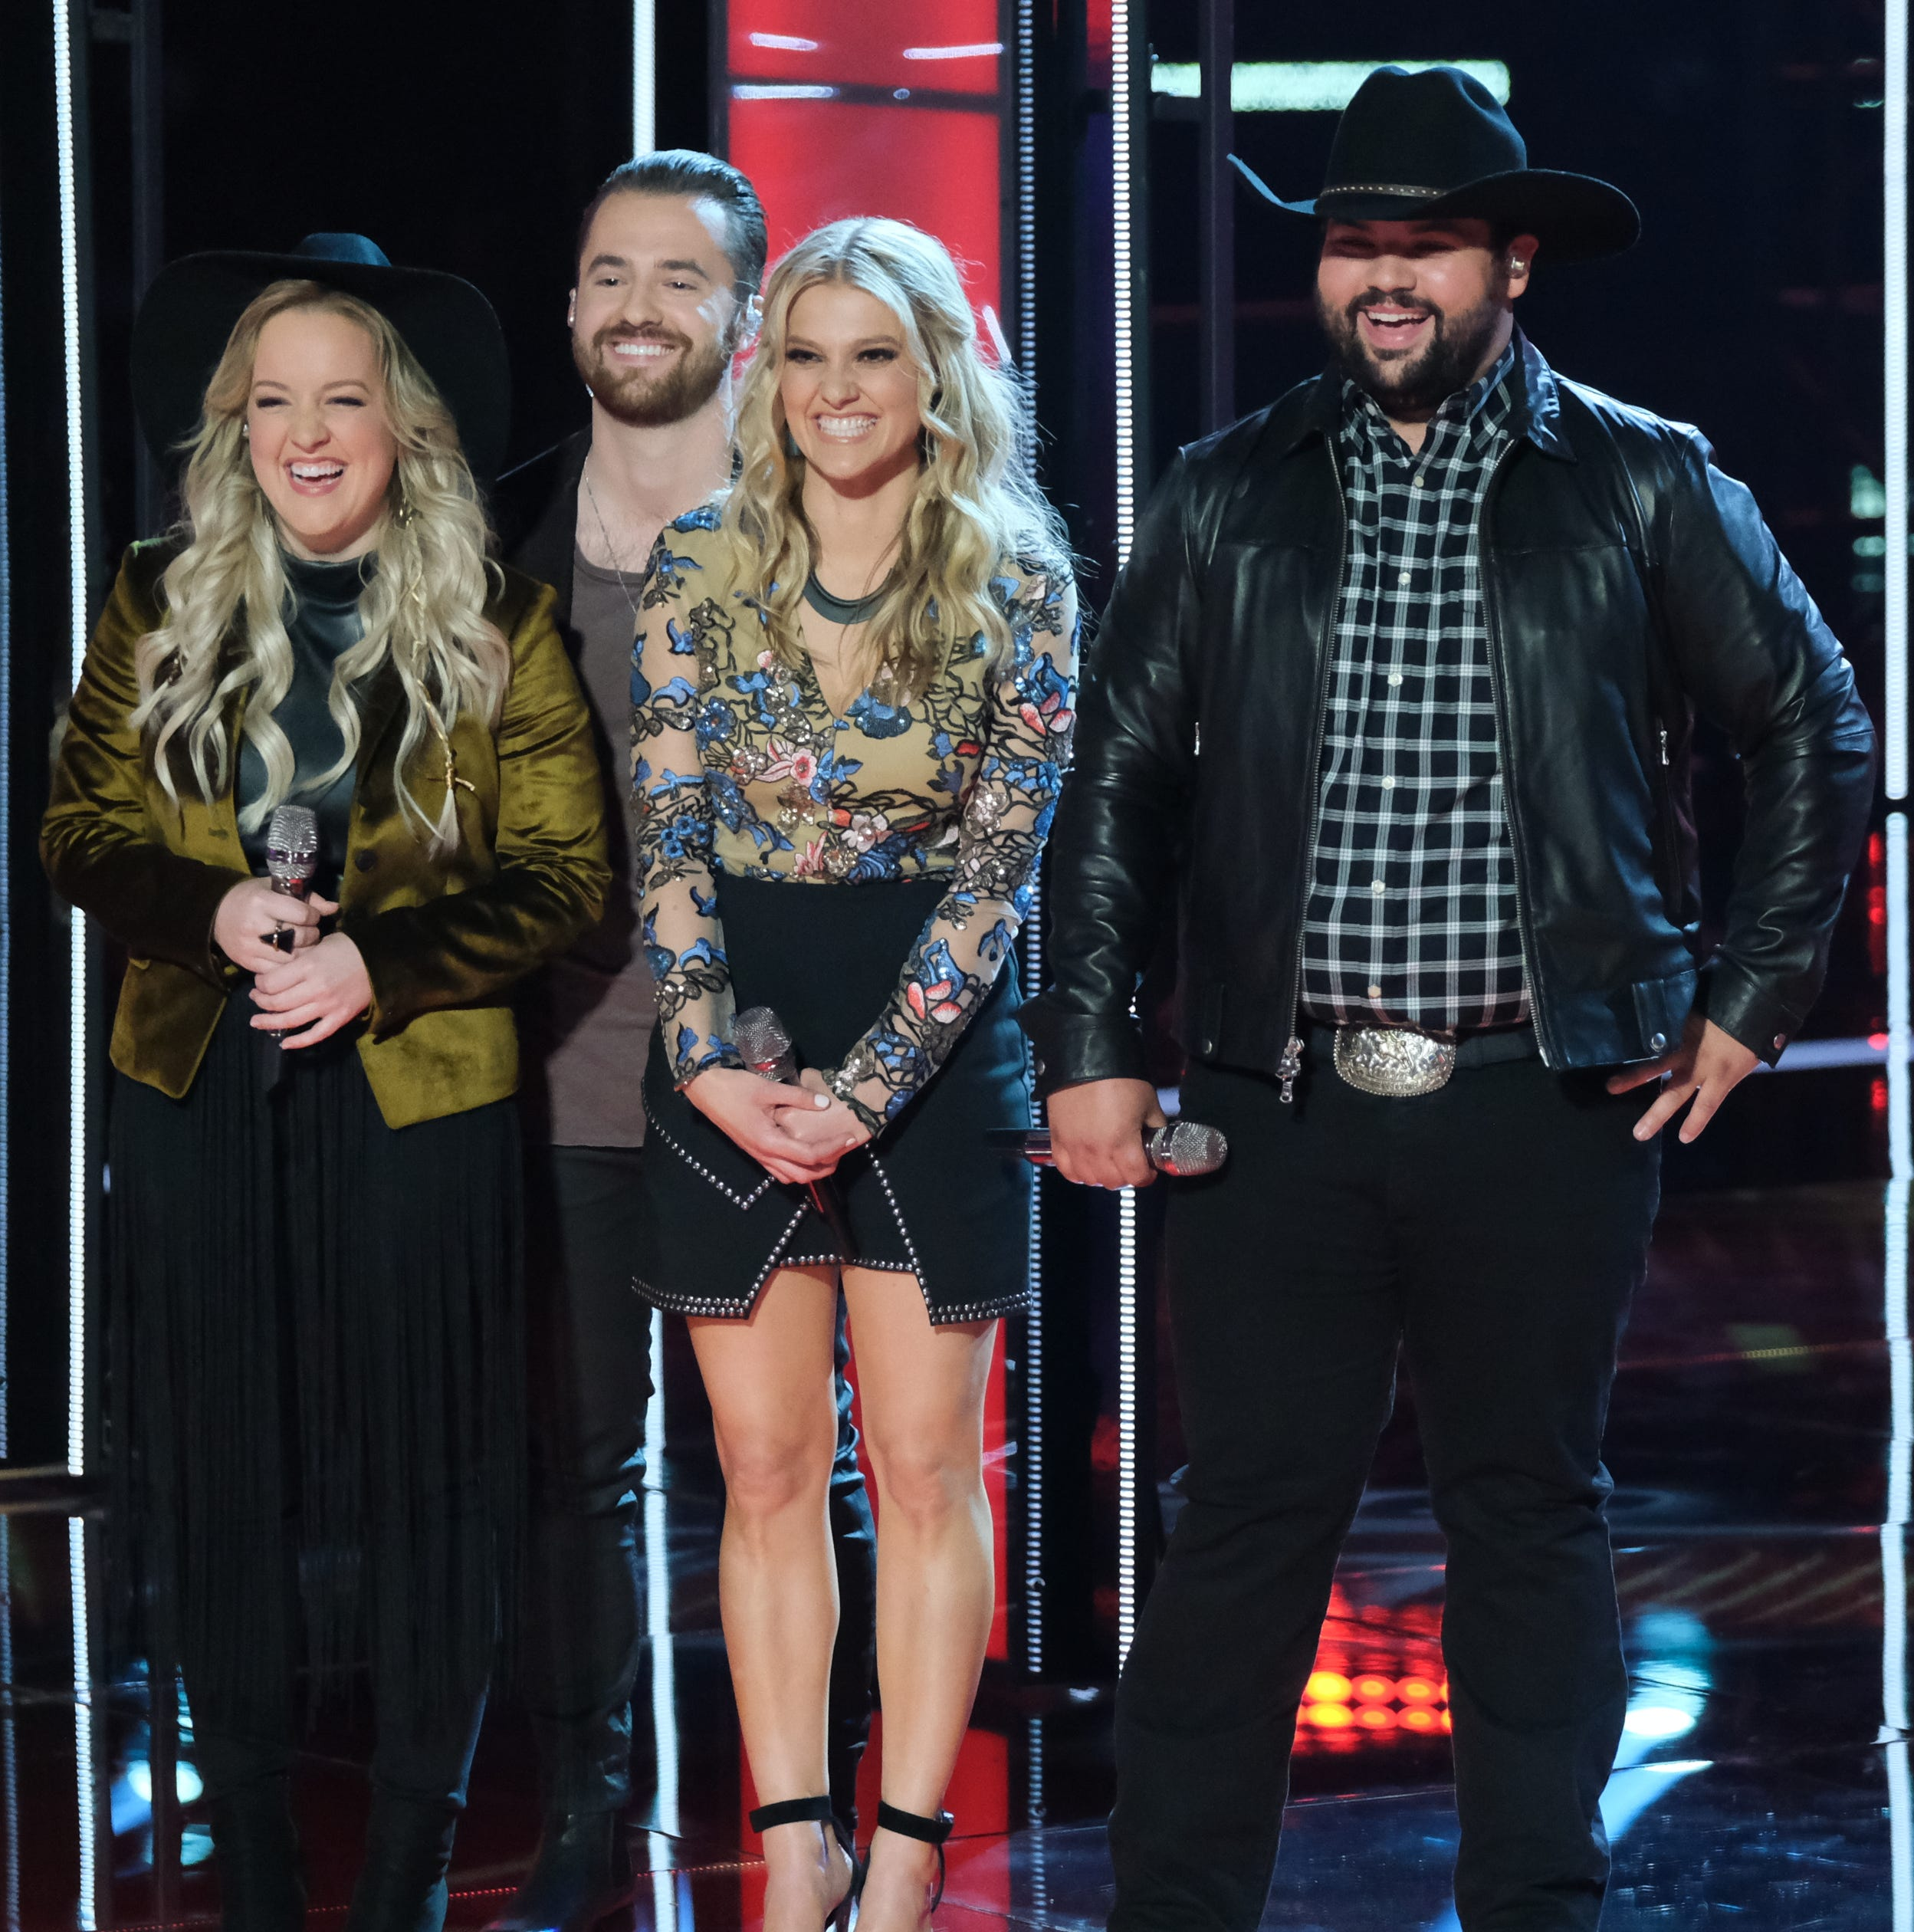 The Bundys on 'The Voice': Do they stay or do they go? Results are in for Cincinnati trio